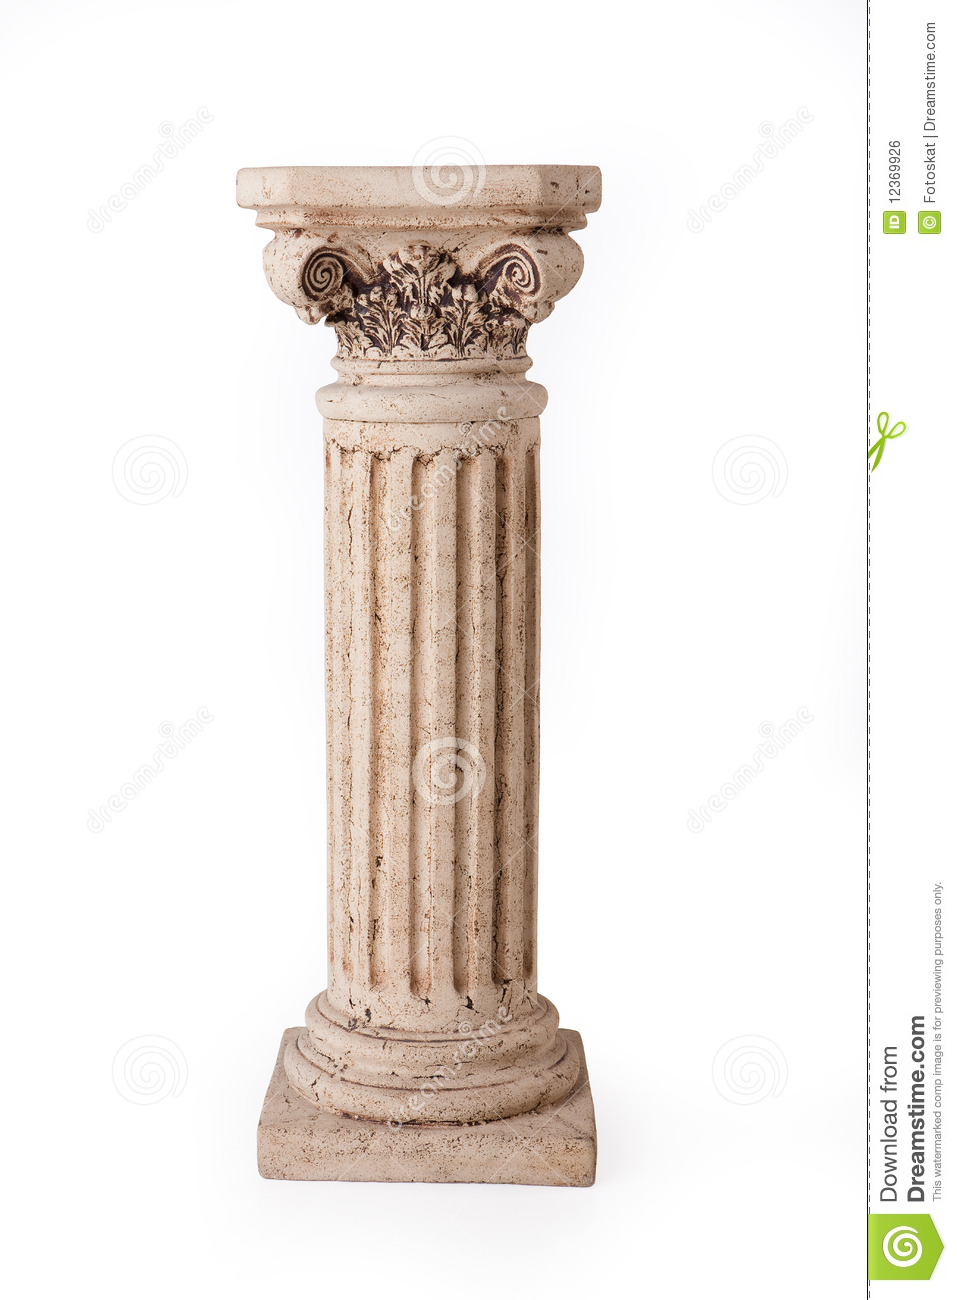 Colonna antica fotografia stock. Immagine di colonna ... Greek Columns Vector